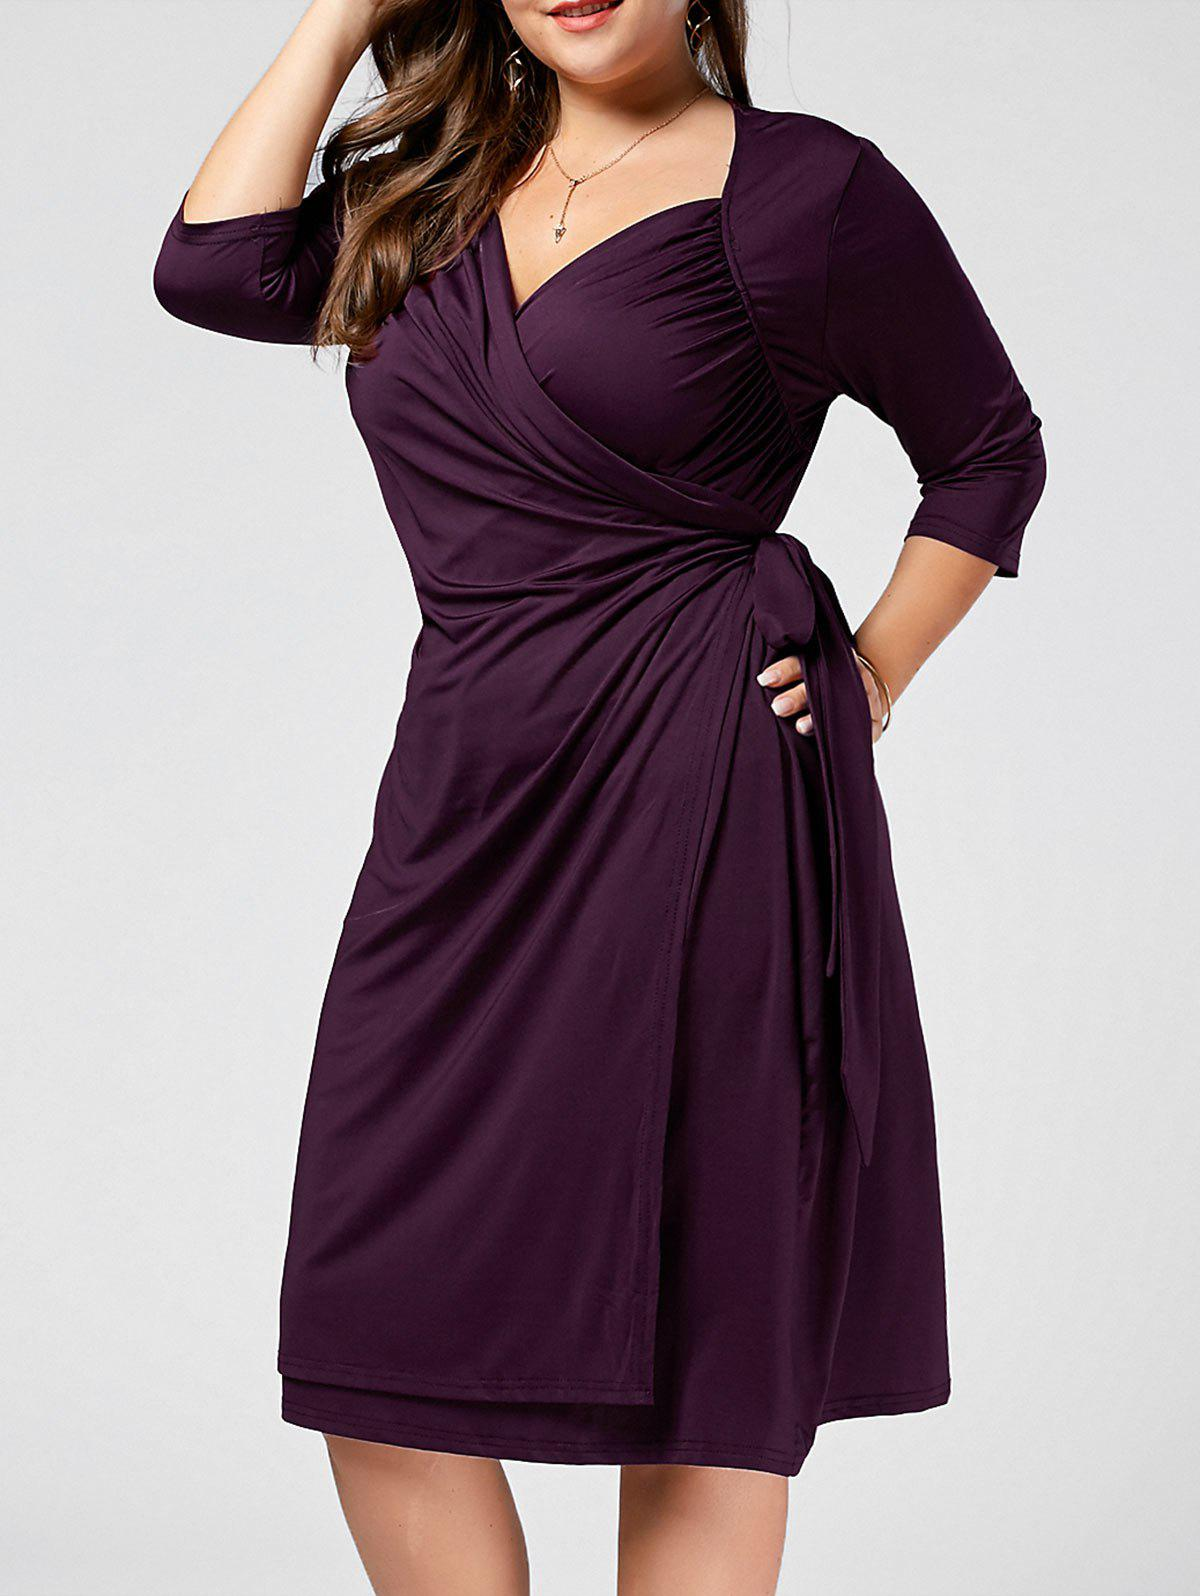 Plus Size V Neck A Line Wrap DressWOMEN<br><br>Size: 4XL; Color: PURPLE; Style: Casual; Material: Cotton Blend,Polyester; Silhouette: A-Line; Dresses Length: Knee-Length; Neckline: V-Neck; Sleeve Length: 3/4 Length Sleeves; Pattern Type: Solid Color; With Belt: No; Season: Fall,Spring; Weight: 0.4000kg; Package Contents: 1 x Dress;